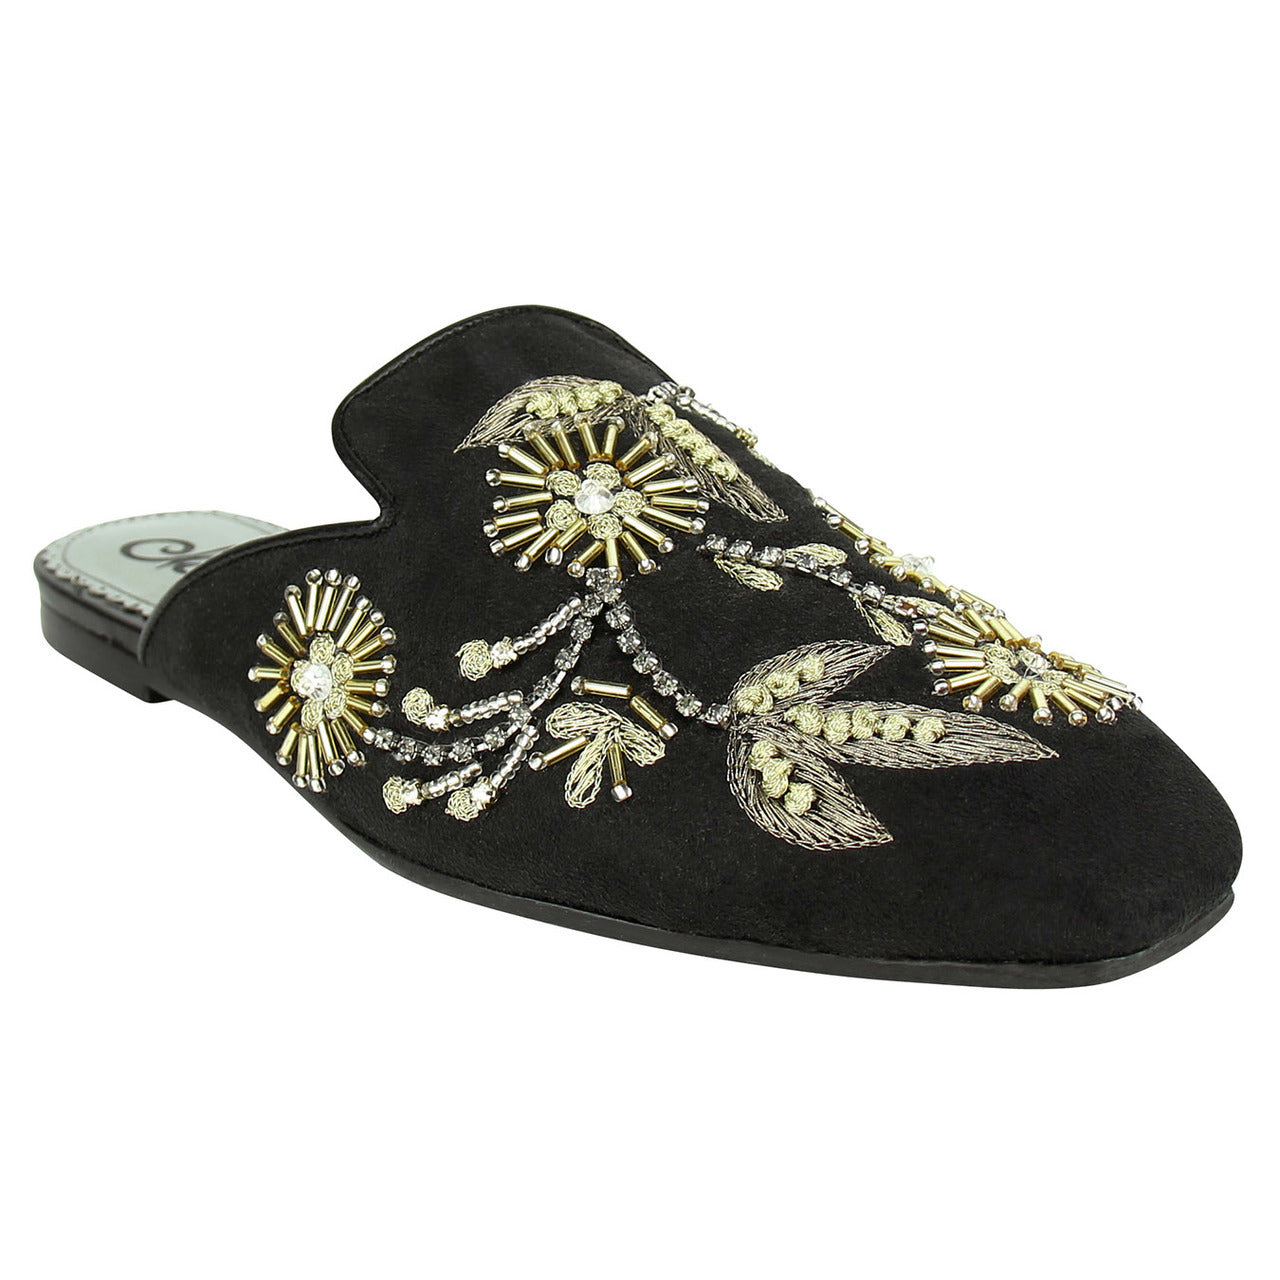 naughty_Monkey_slipper_flat_women_embroidered_Floral Island-Black